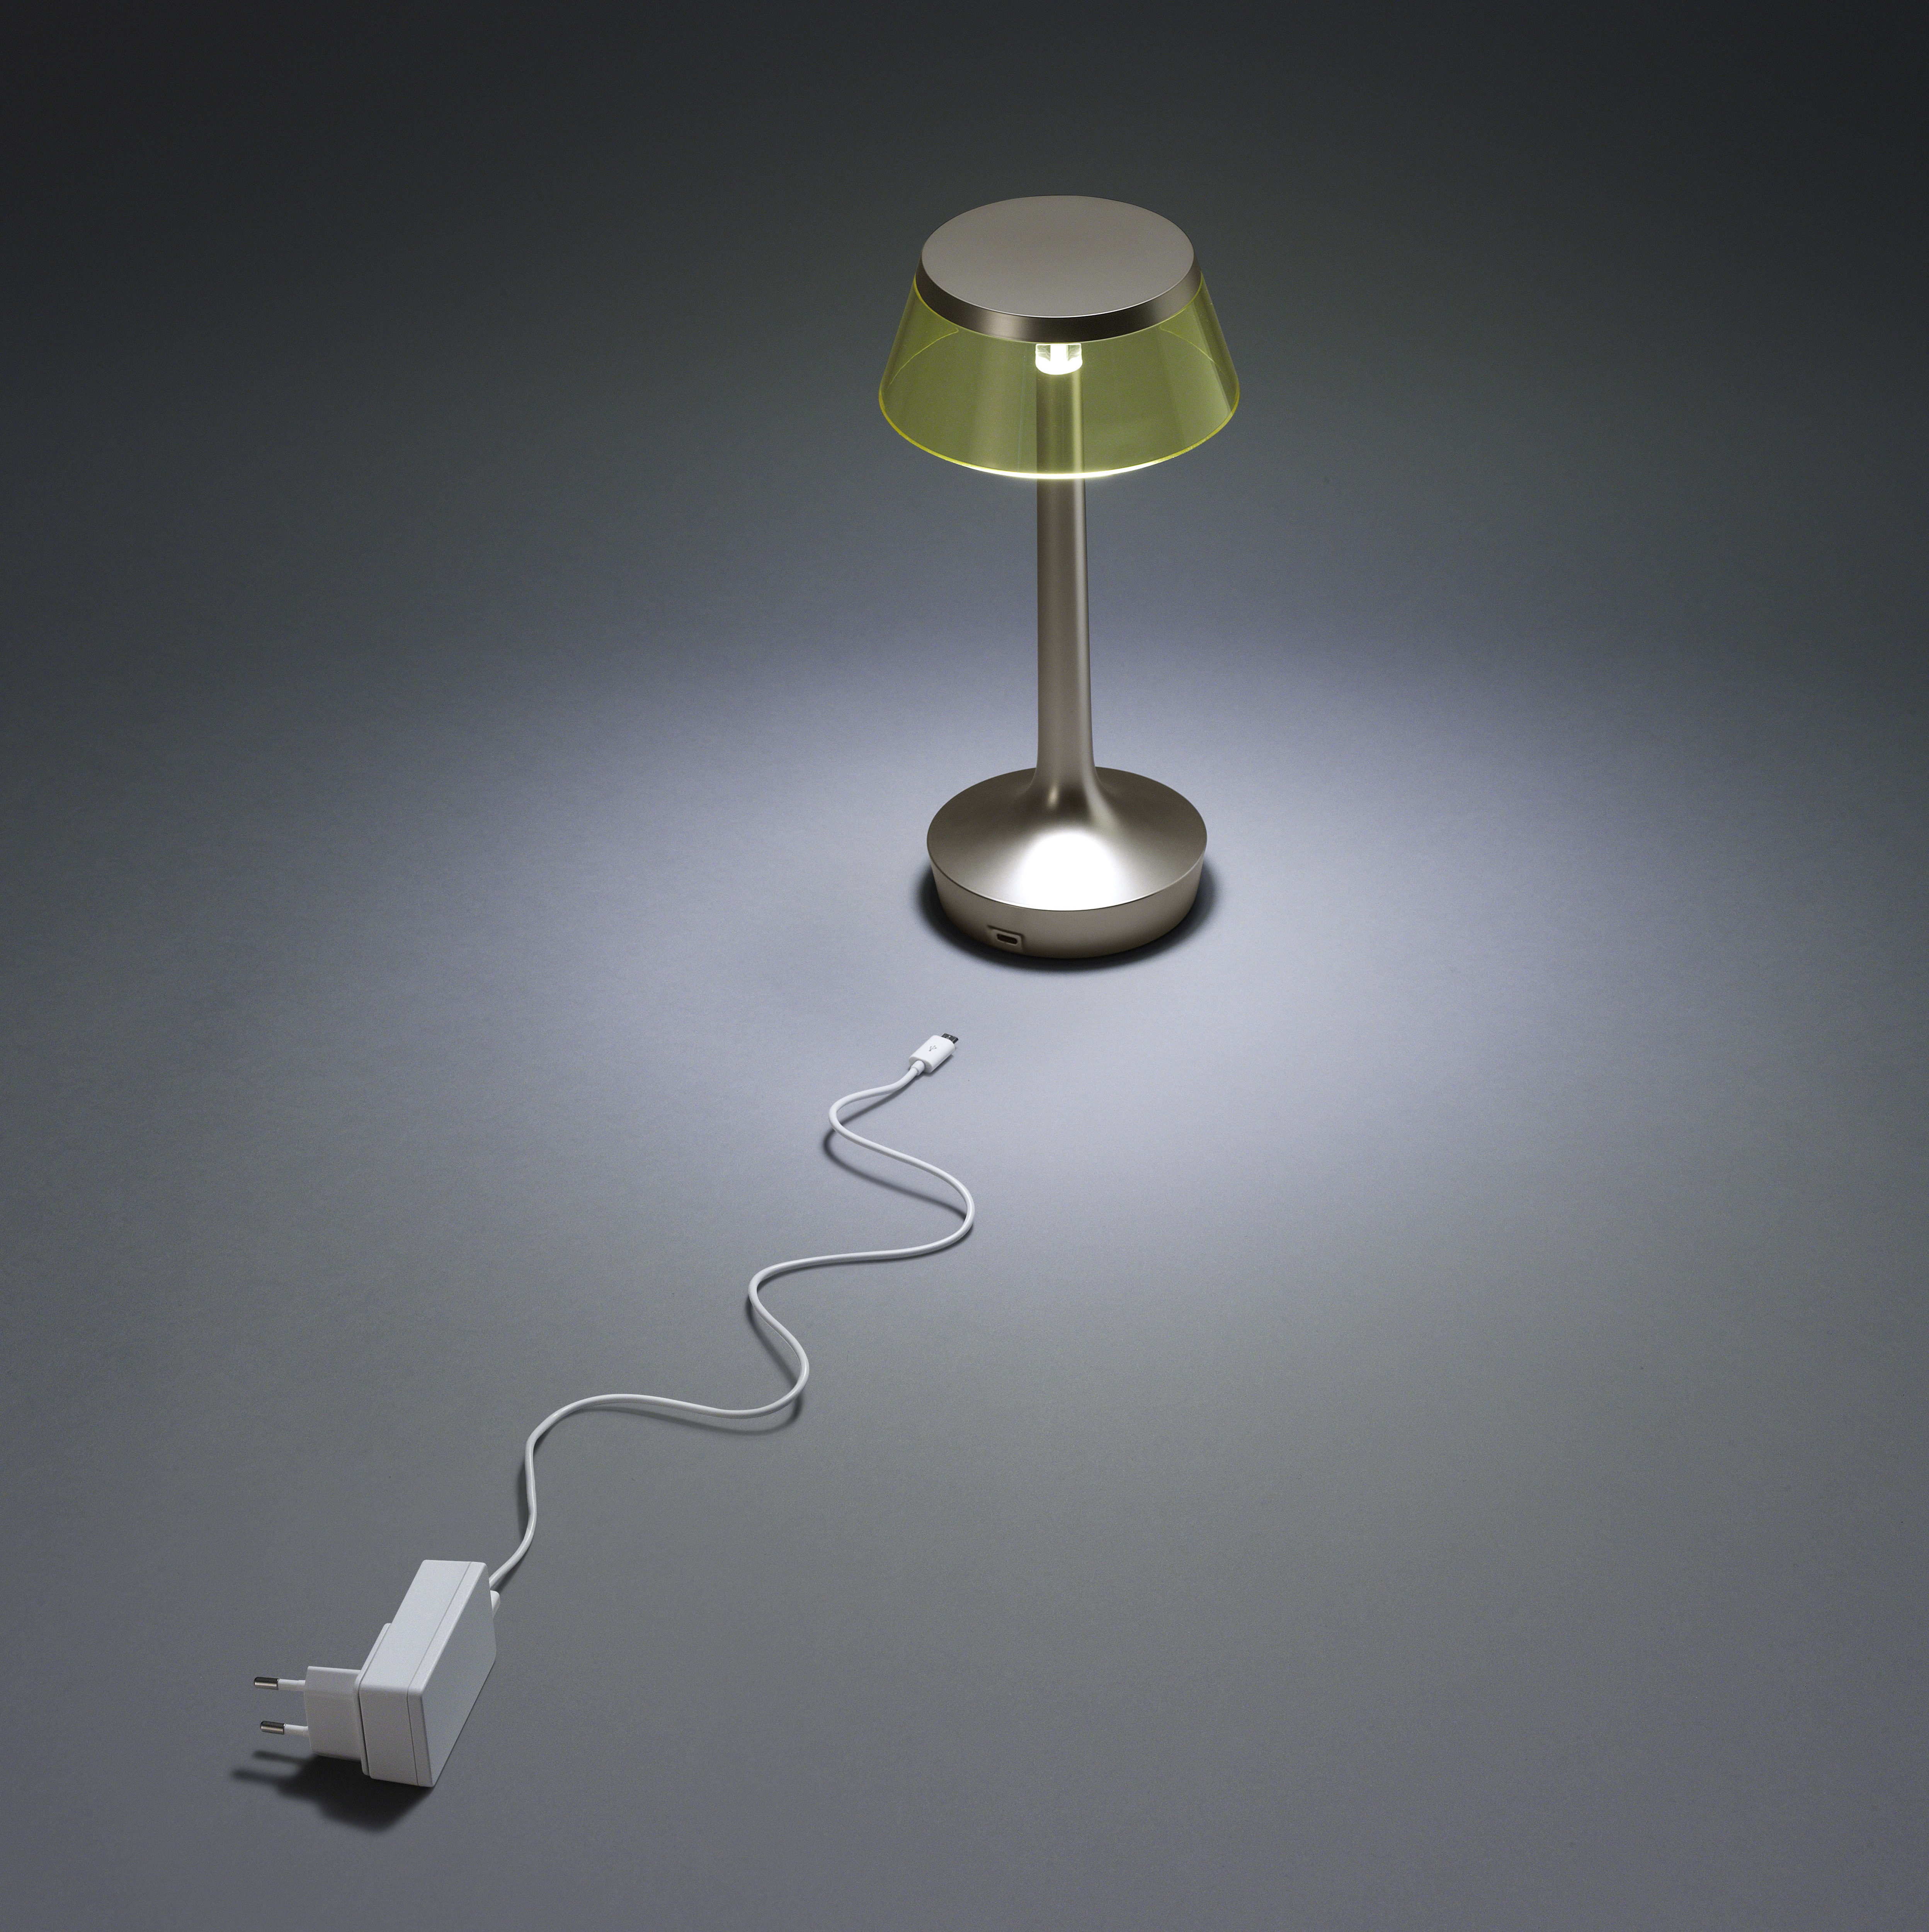 bon jour unplugged led mit micro usb ladekabel flos. Black Bedroom Furniture Sets. Home Design Ideas